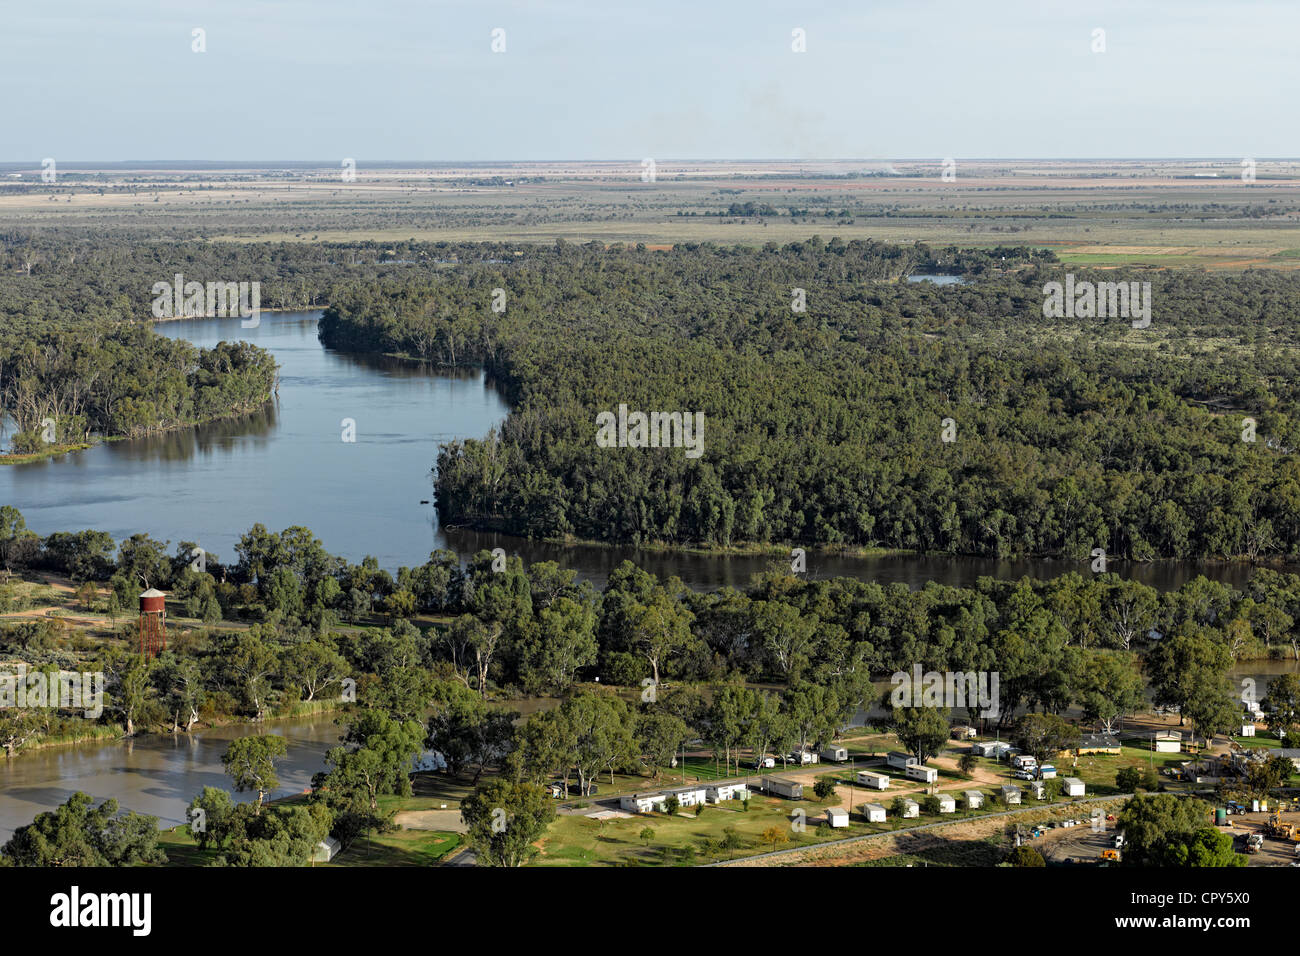 Low level aerial photograph of the River Murray, just before joining the Darling River at Wentworth, NSW, Australia. - Stock Image